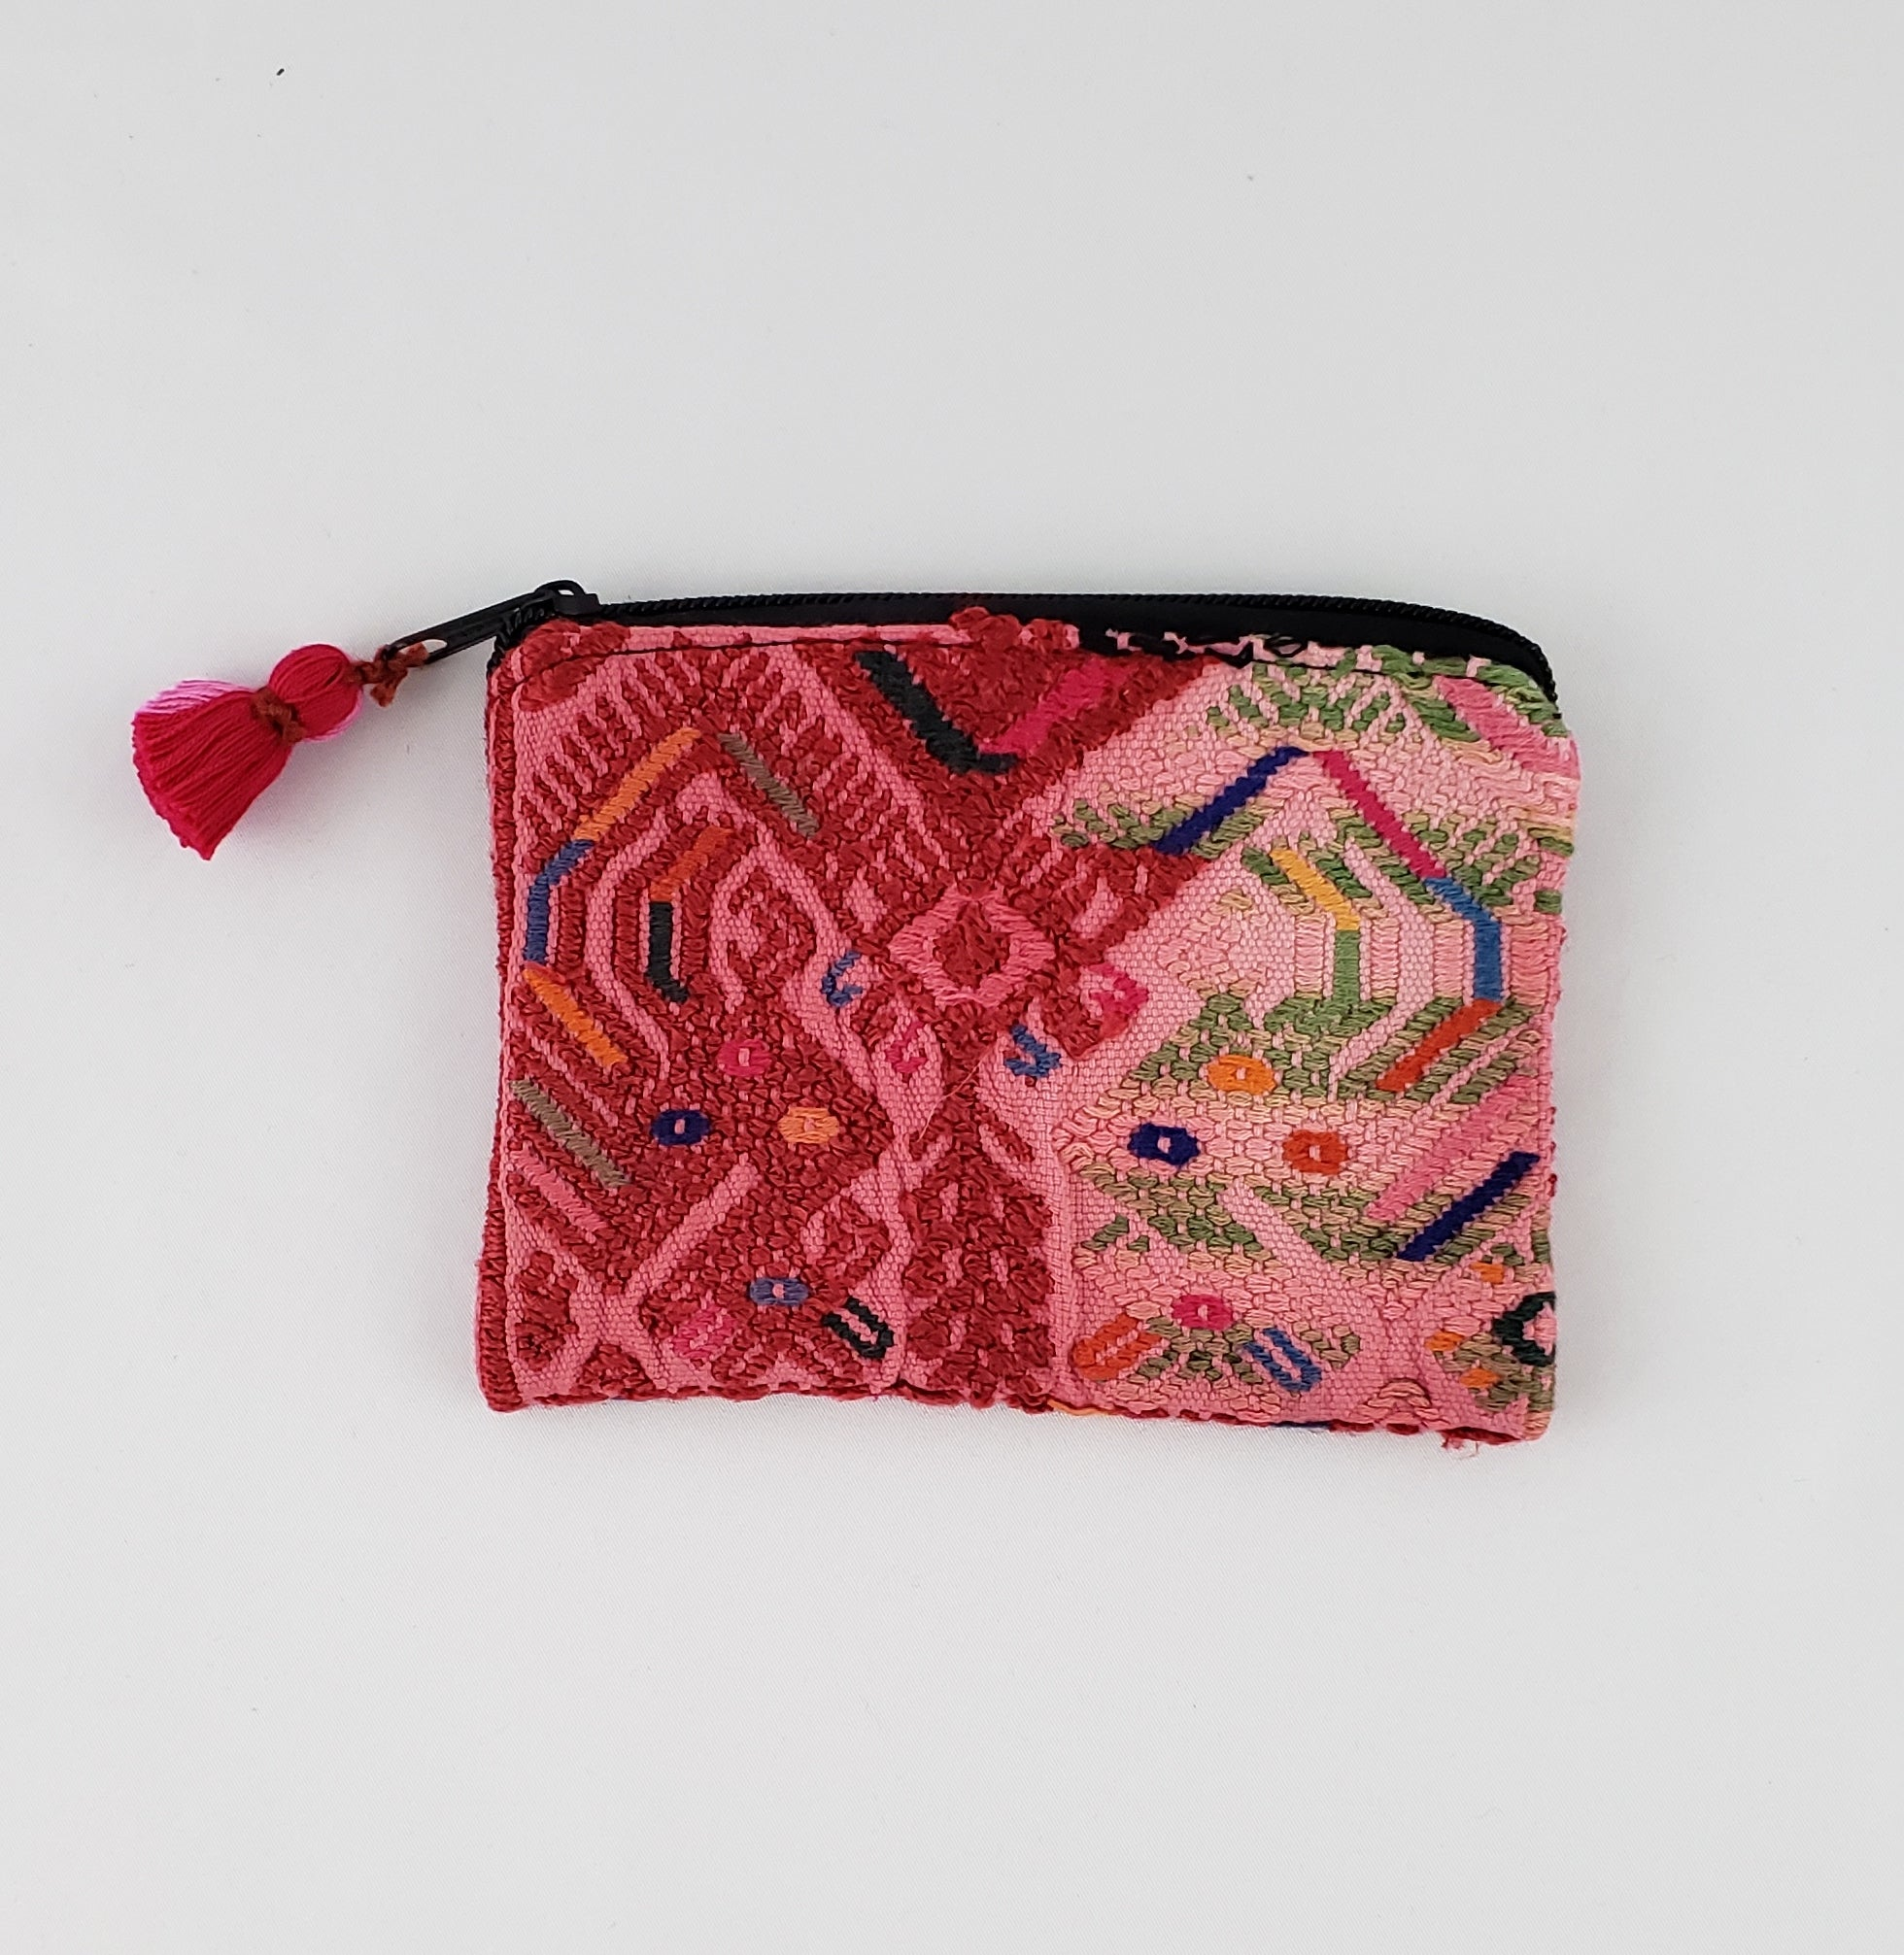 Irma Pink Vintage Coin Purse